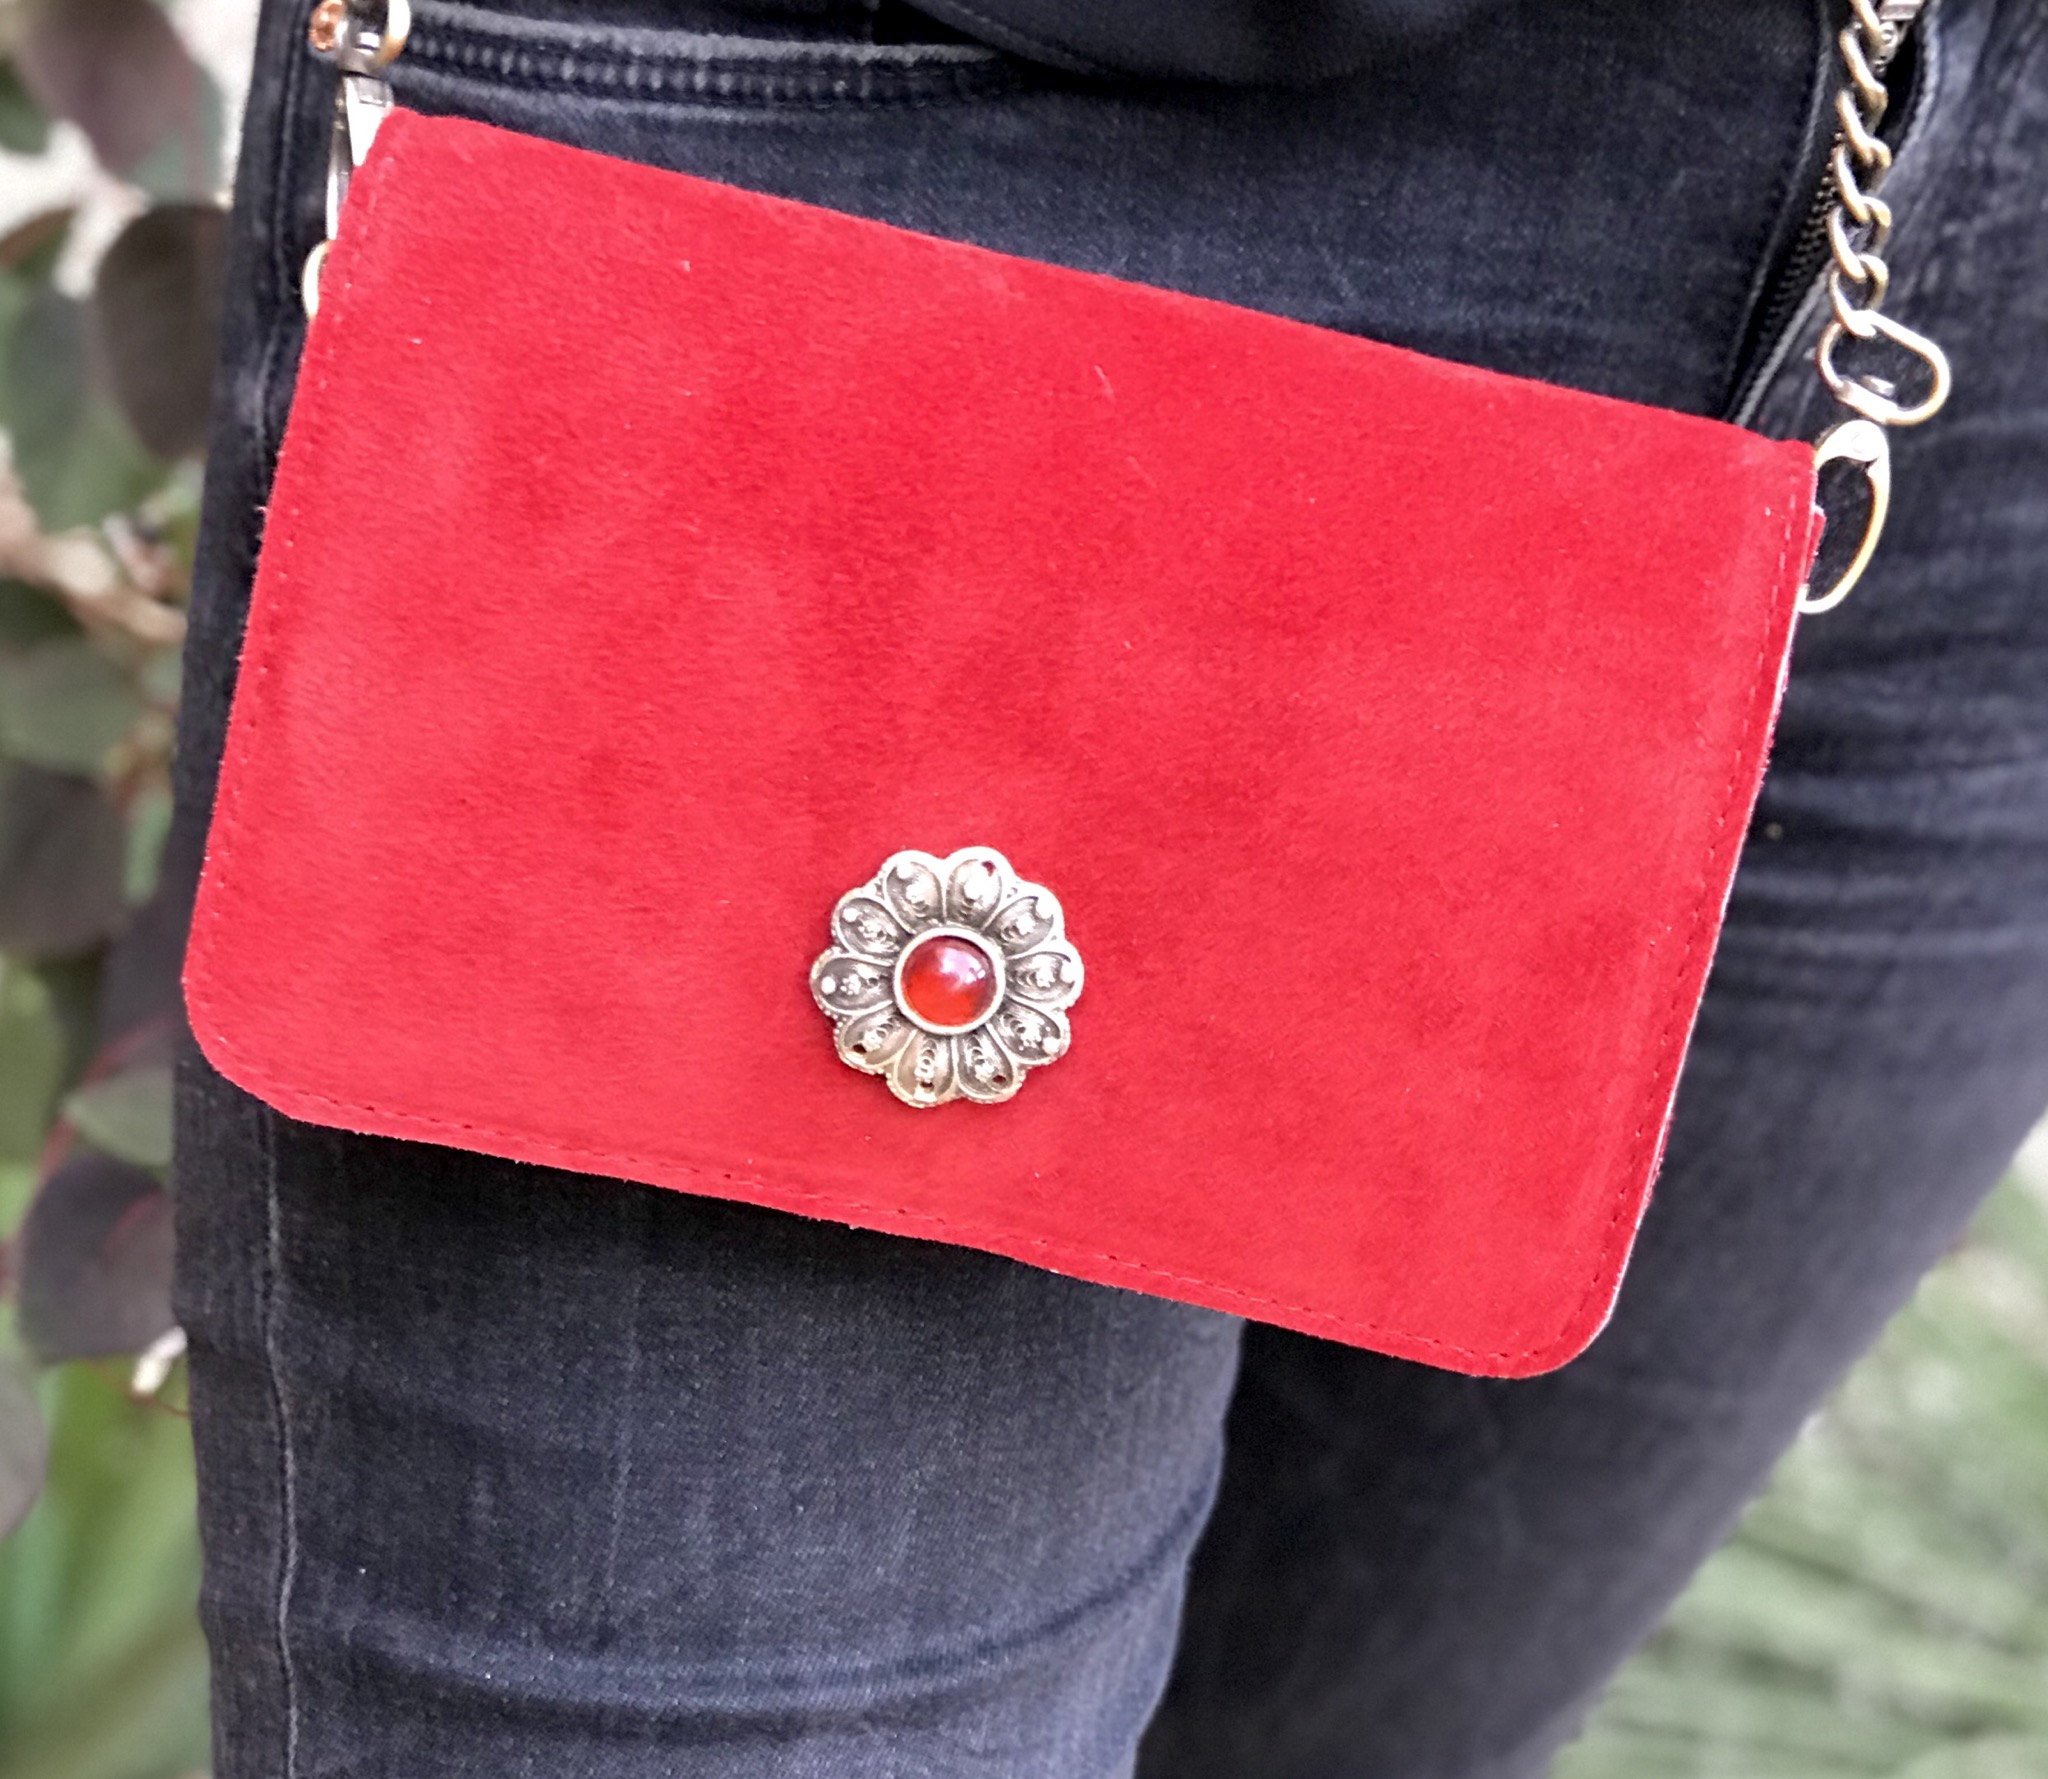 Mini bag suede leather red with artisanal jewelry